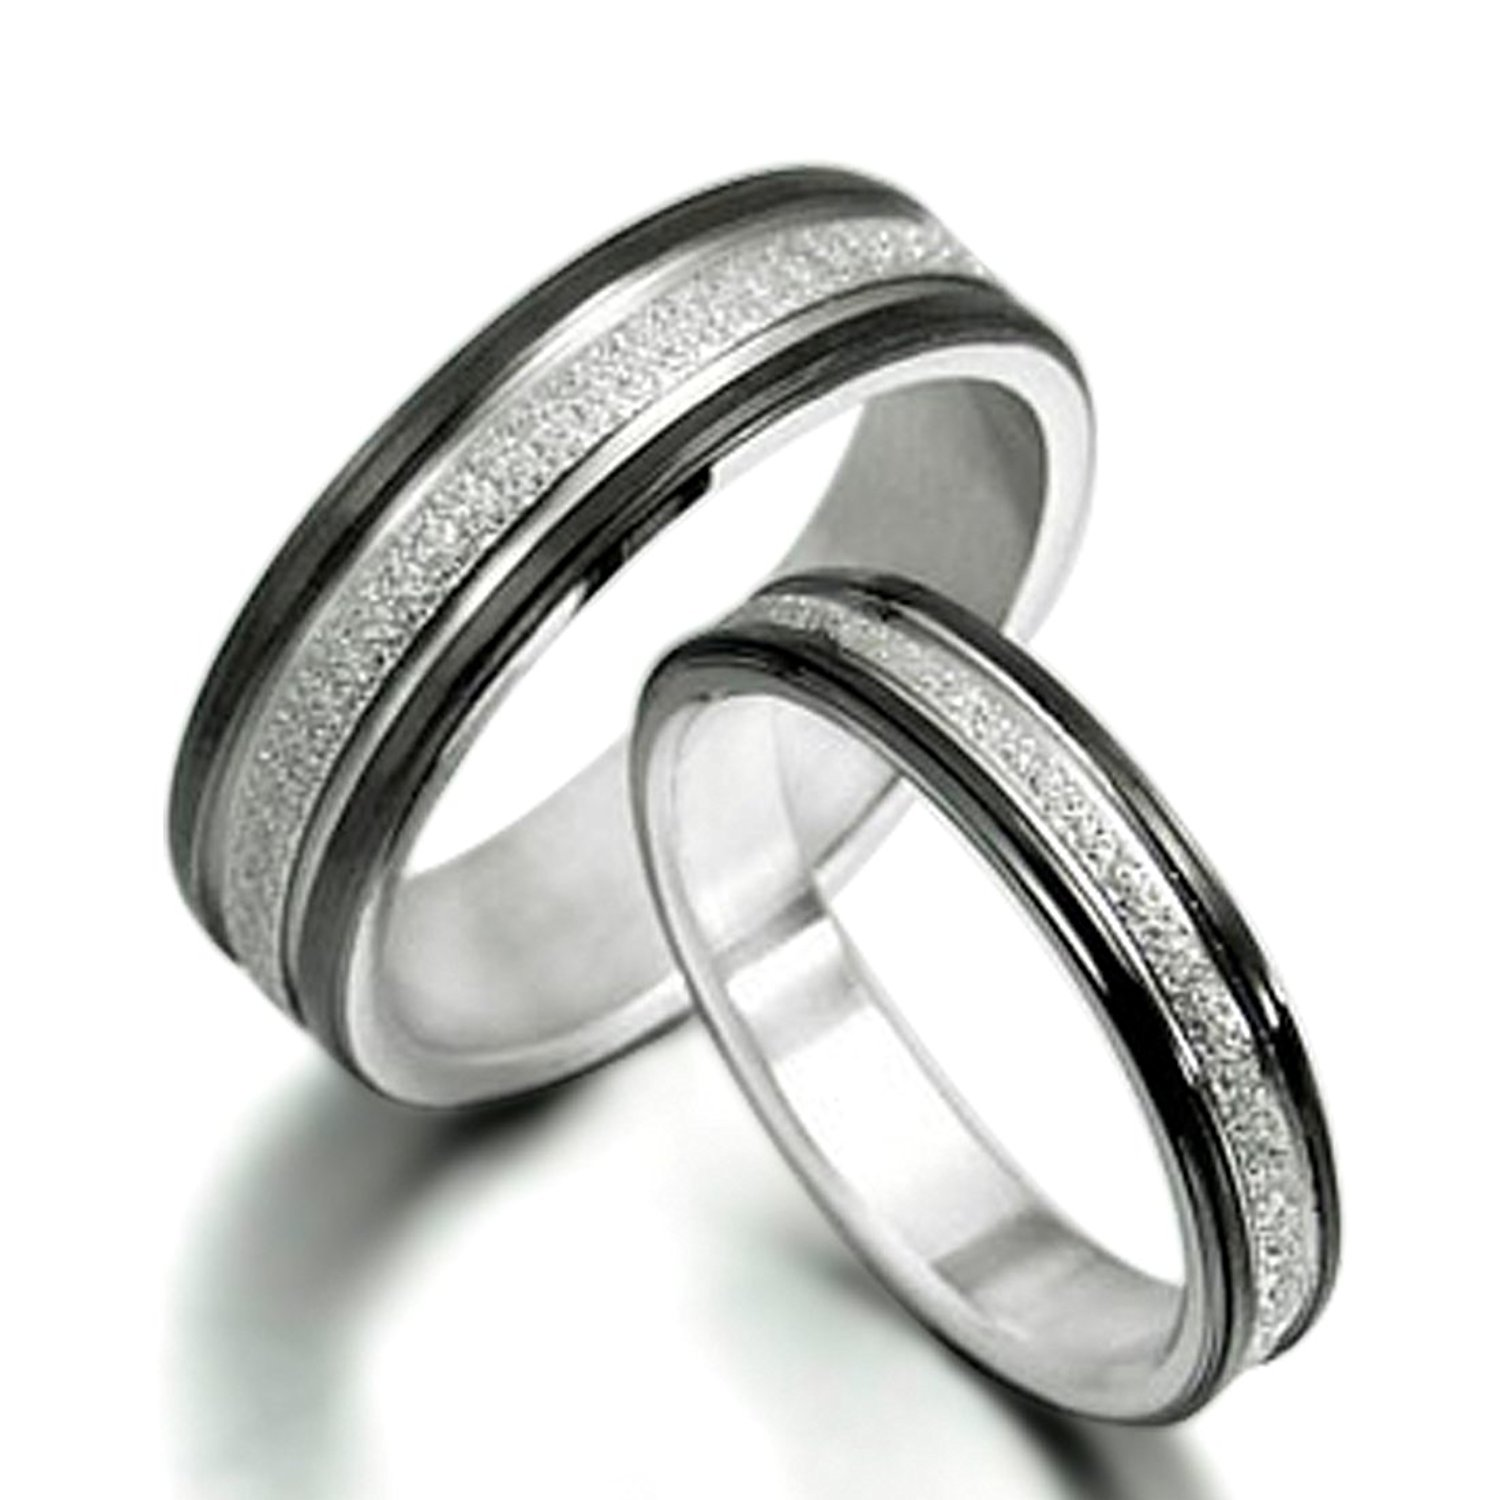 7ad256e82b Get Quotations · Gemini His and Her Black Titanium Promise Rings Couple  Matching Wedding Rings Set 6mm & 4mm